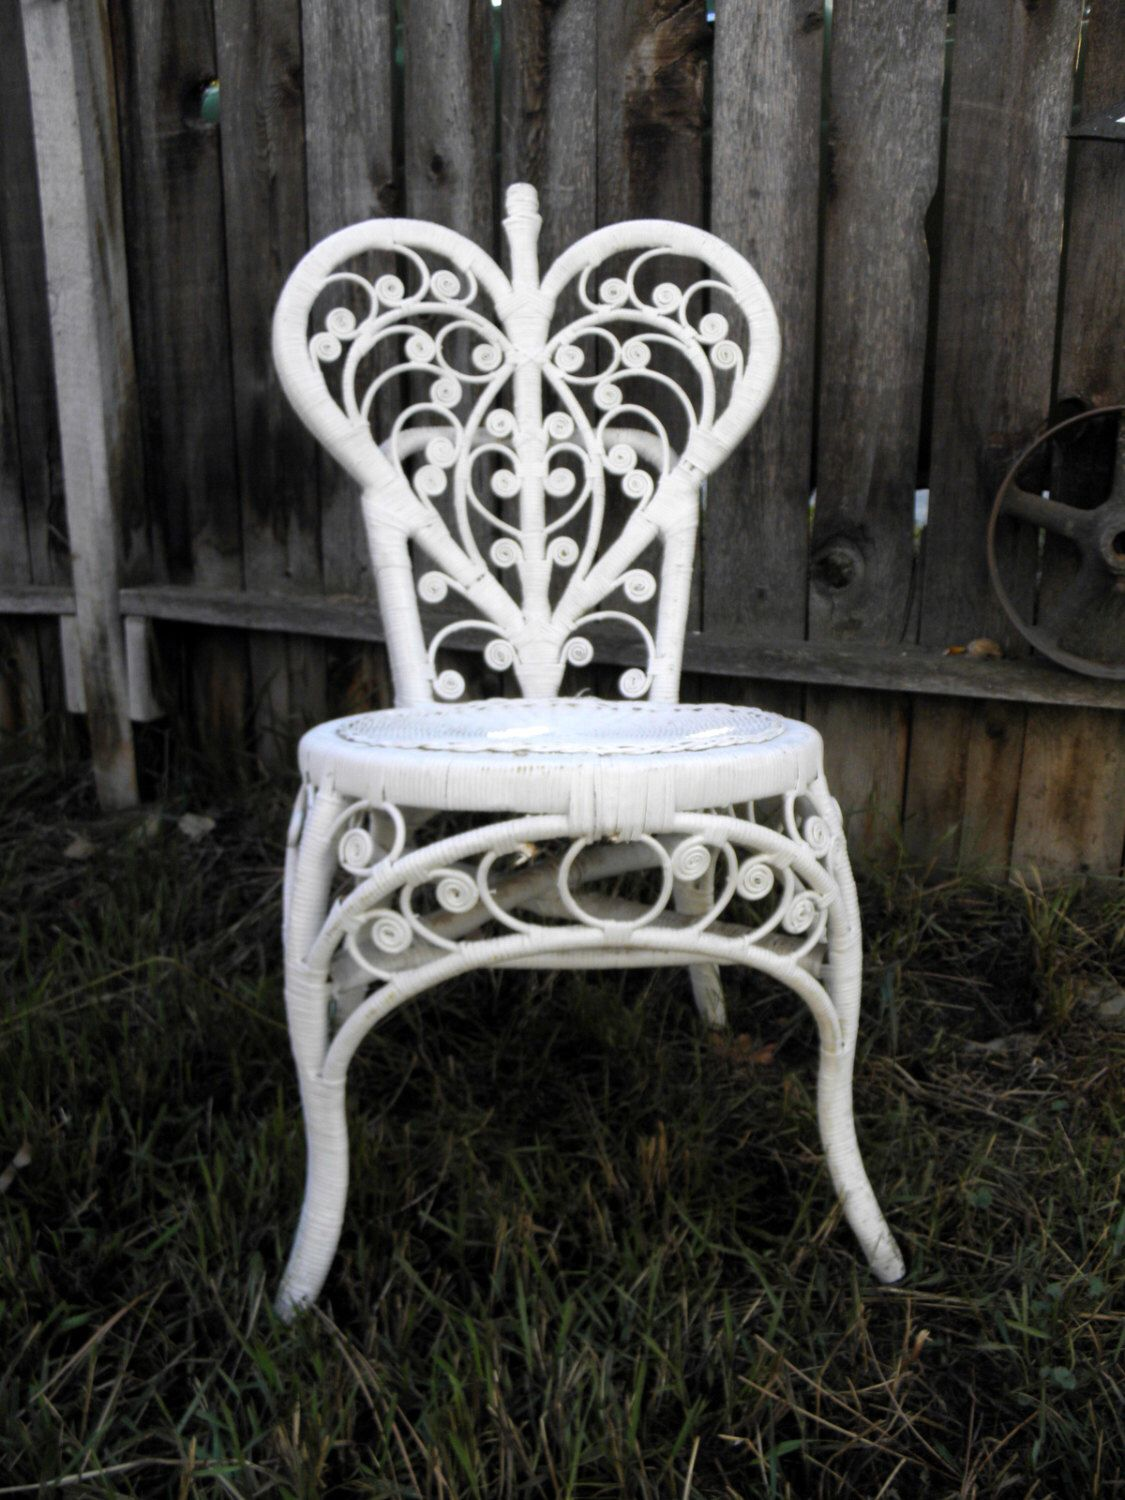 70s Heart Wicker Chair White Rattan Cottage Chic